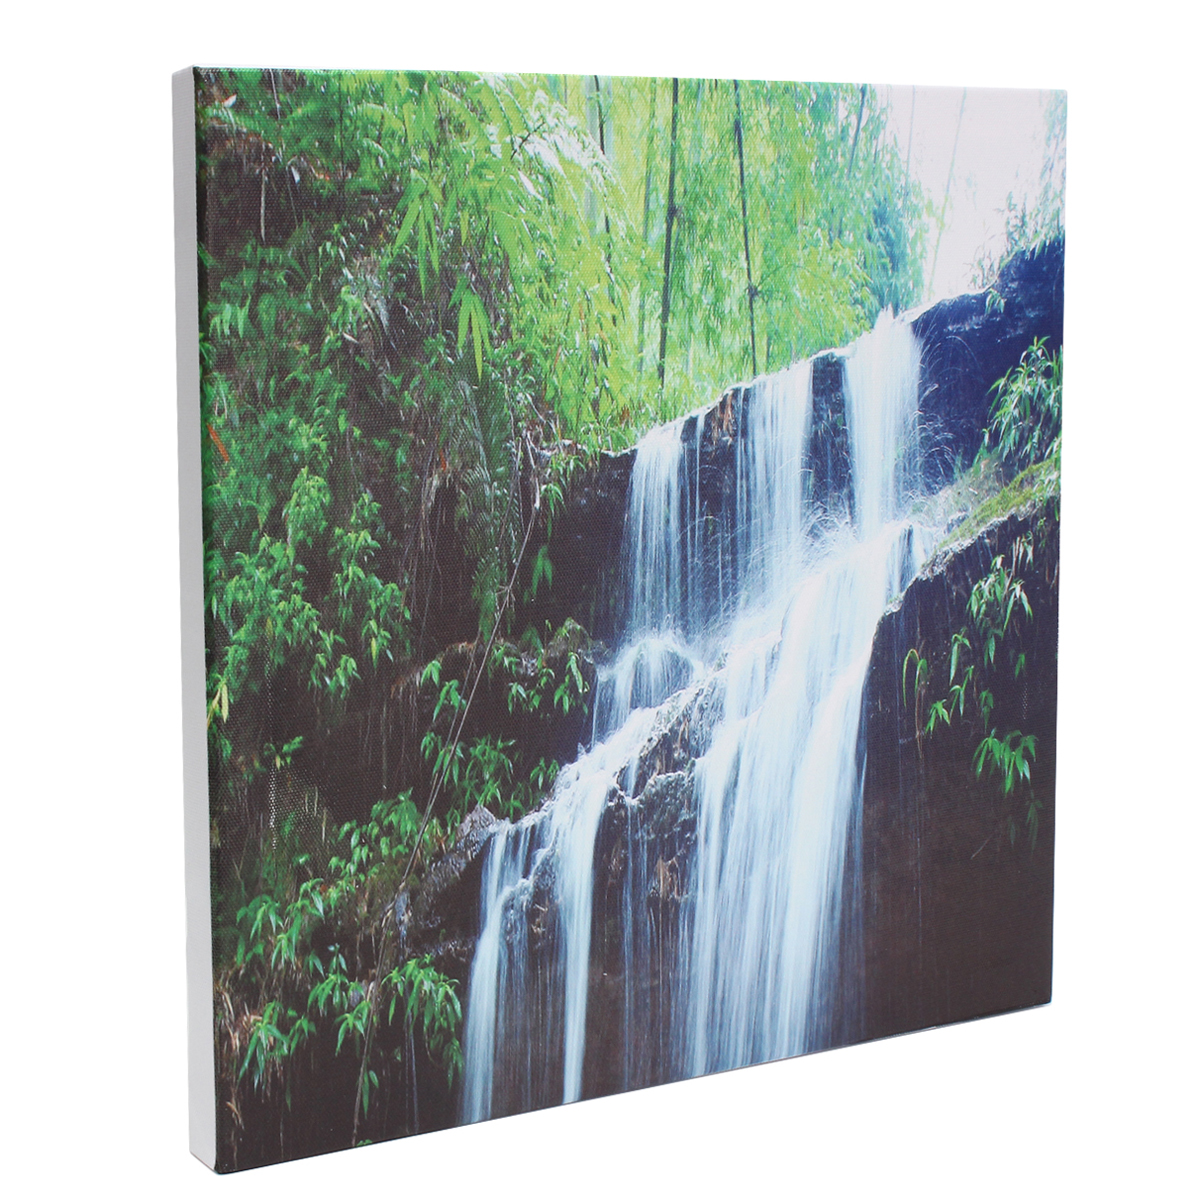 nice living room color round ottoman decor 3 cascade large waterfall framed print painting canvas ...